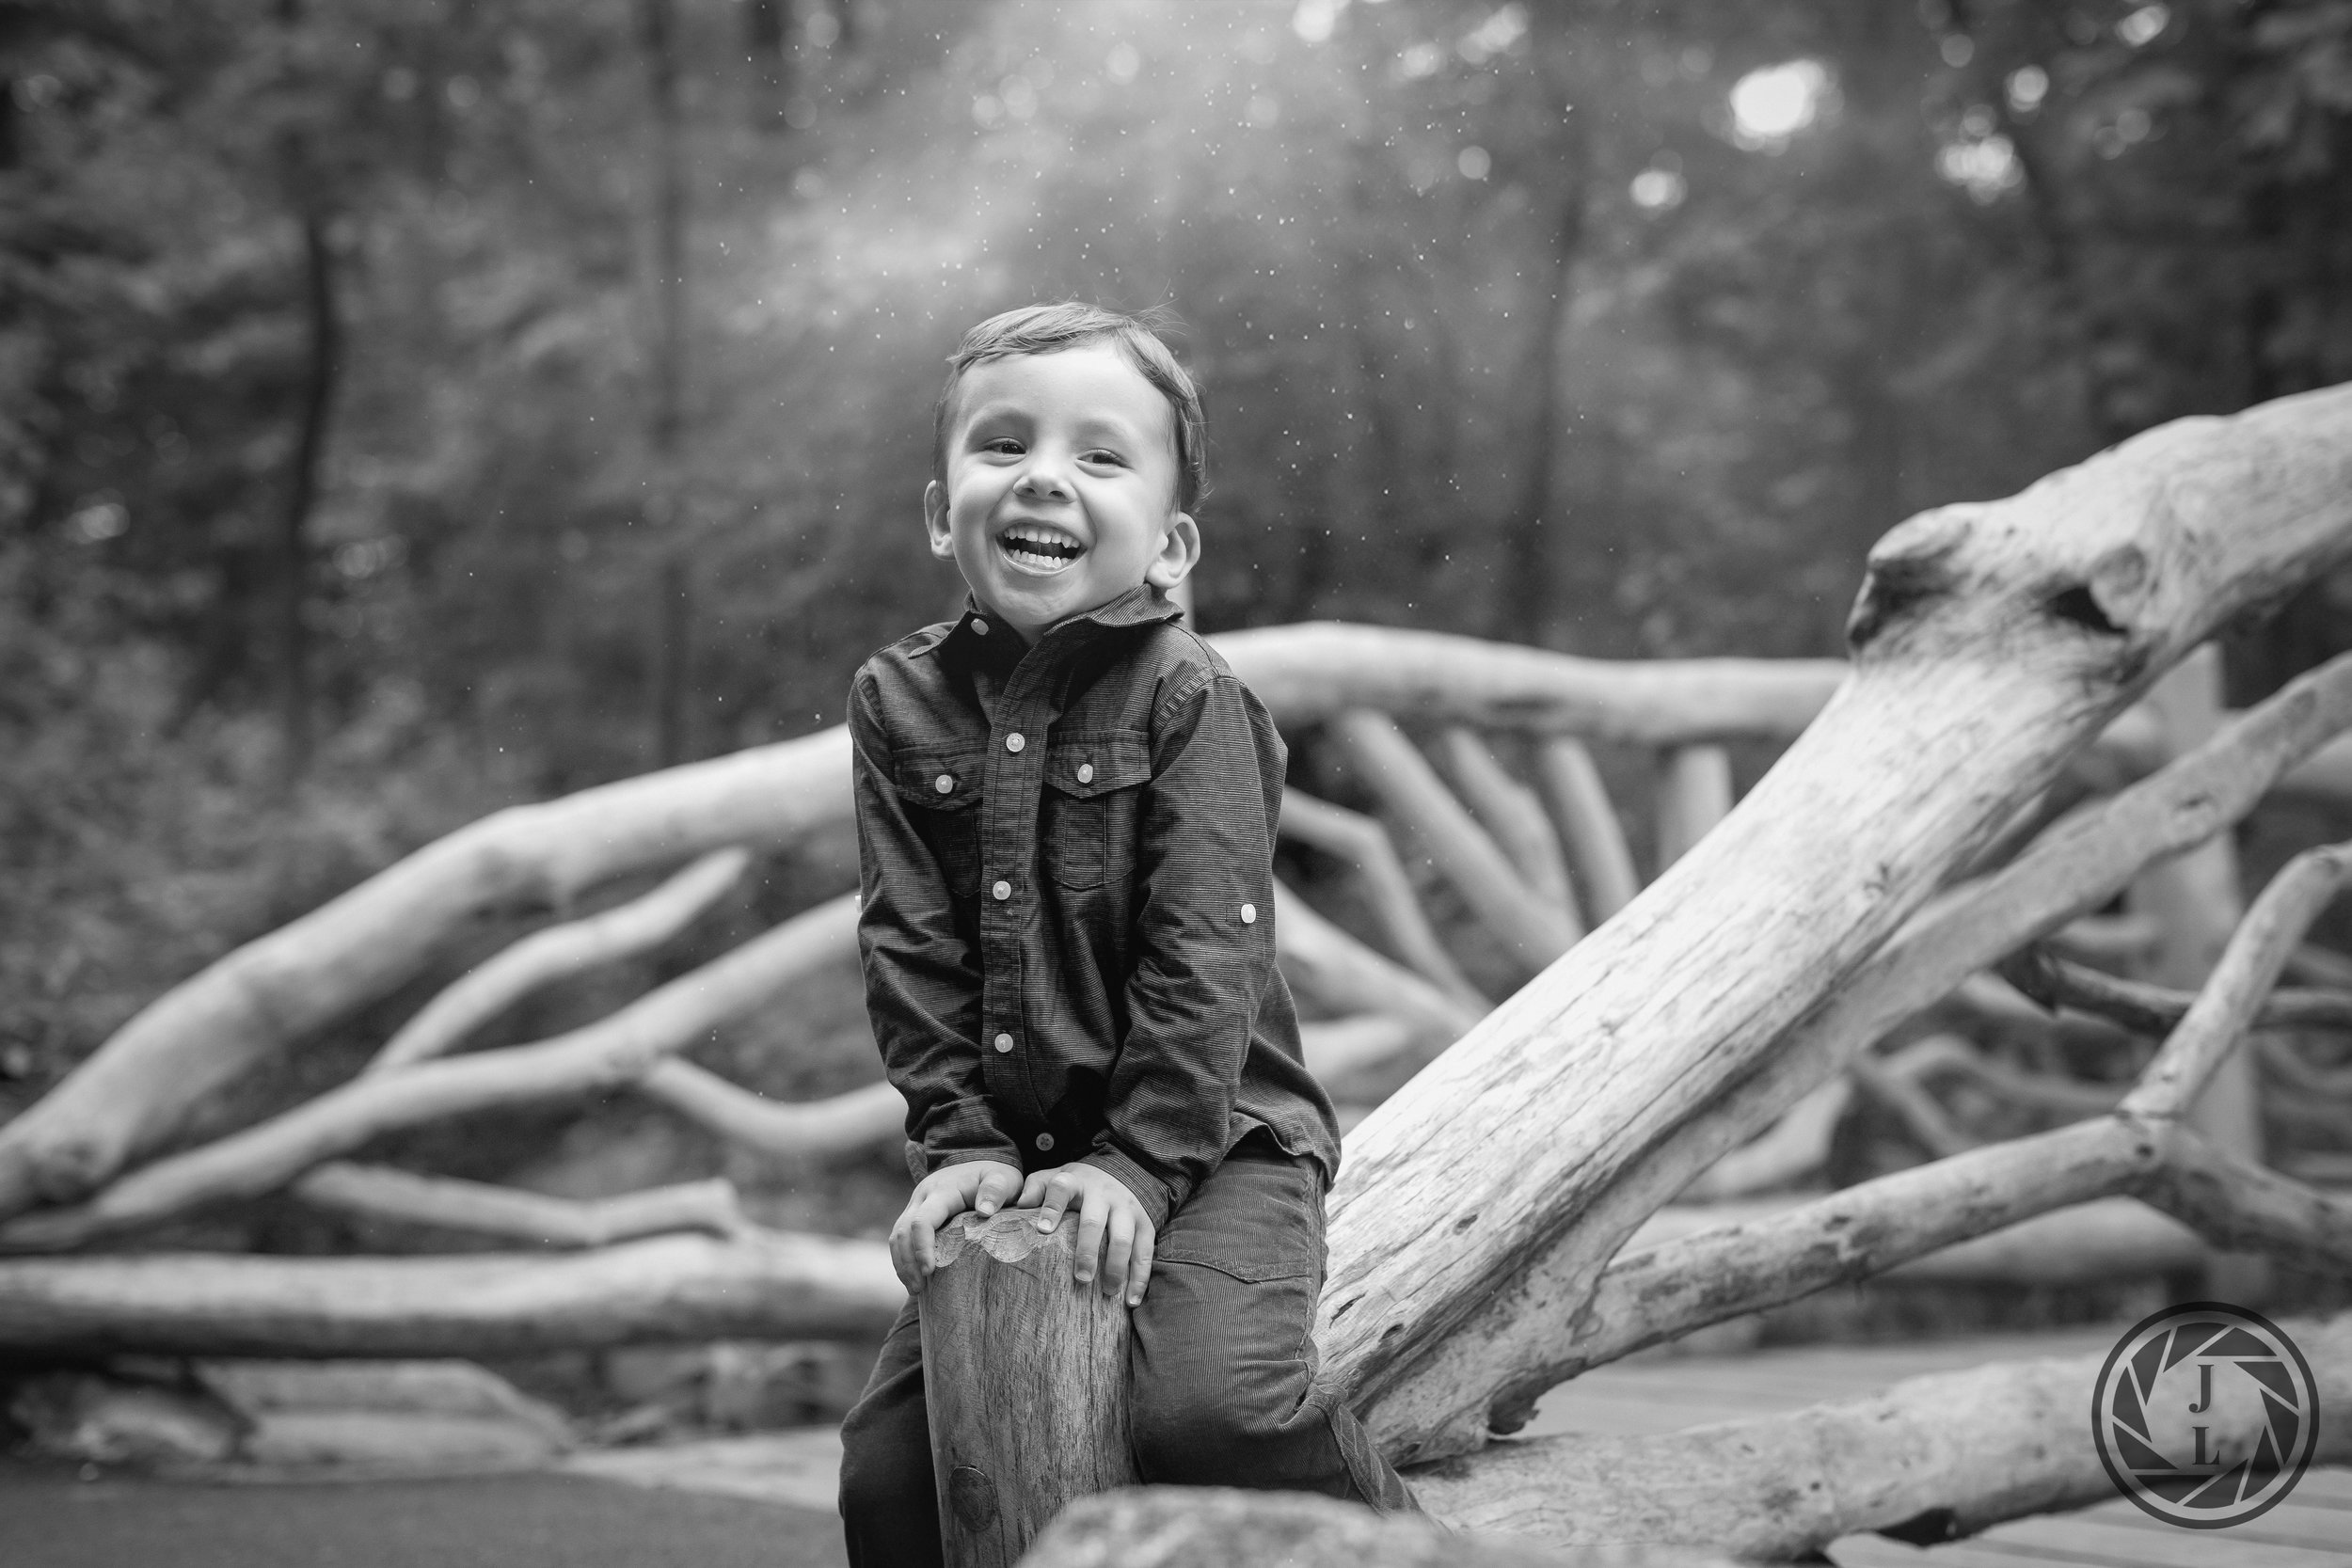 black and white image of a laughing boy sitting on a wooden bridge